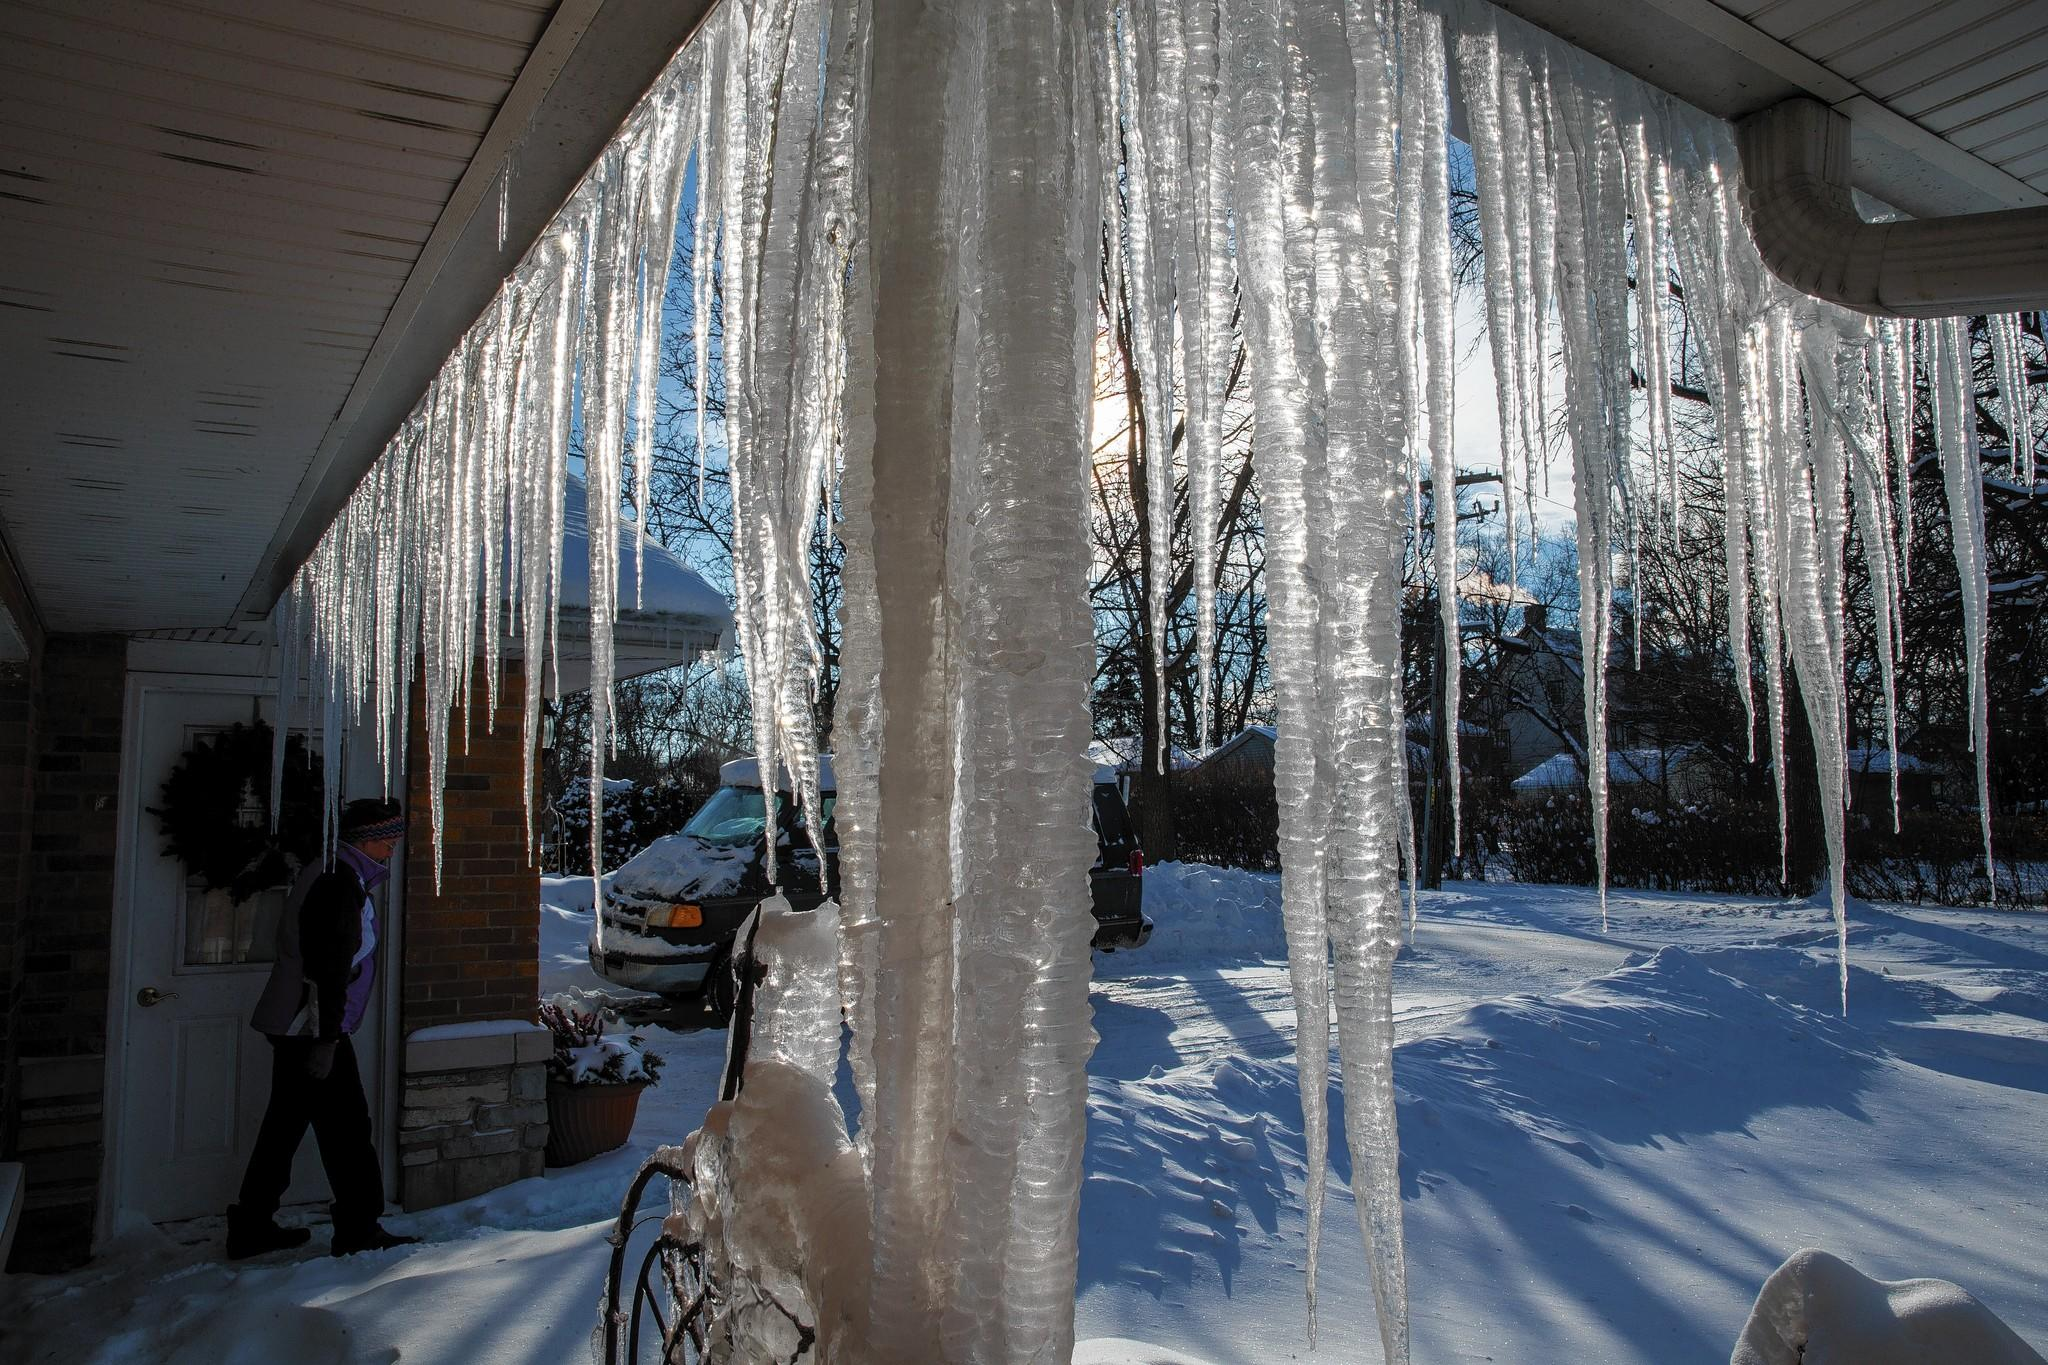 Ice that builds up on the roofs of homes from melting snow can cause damming that can damage gutters and roofs and send water into houses.